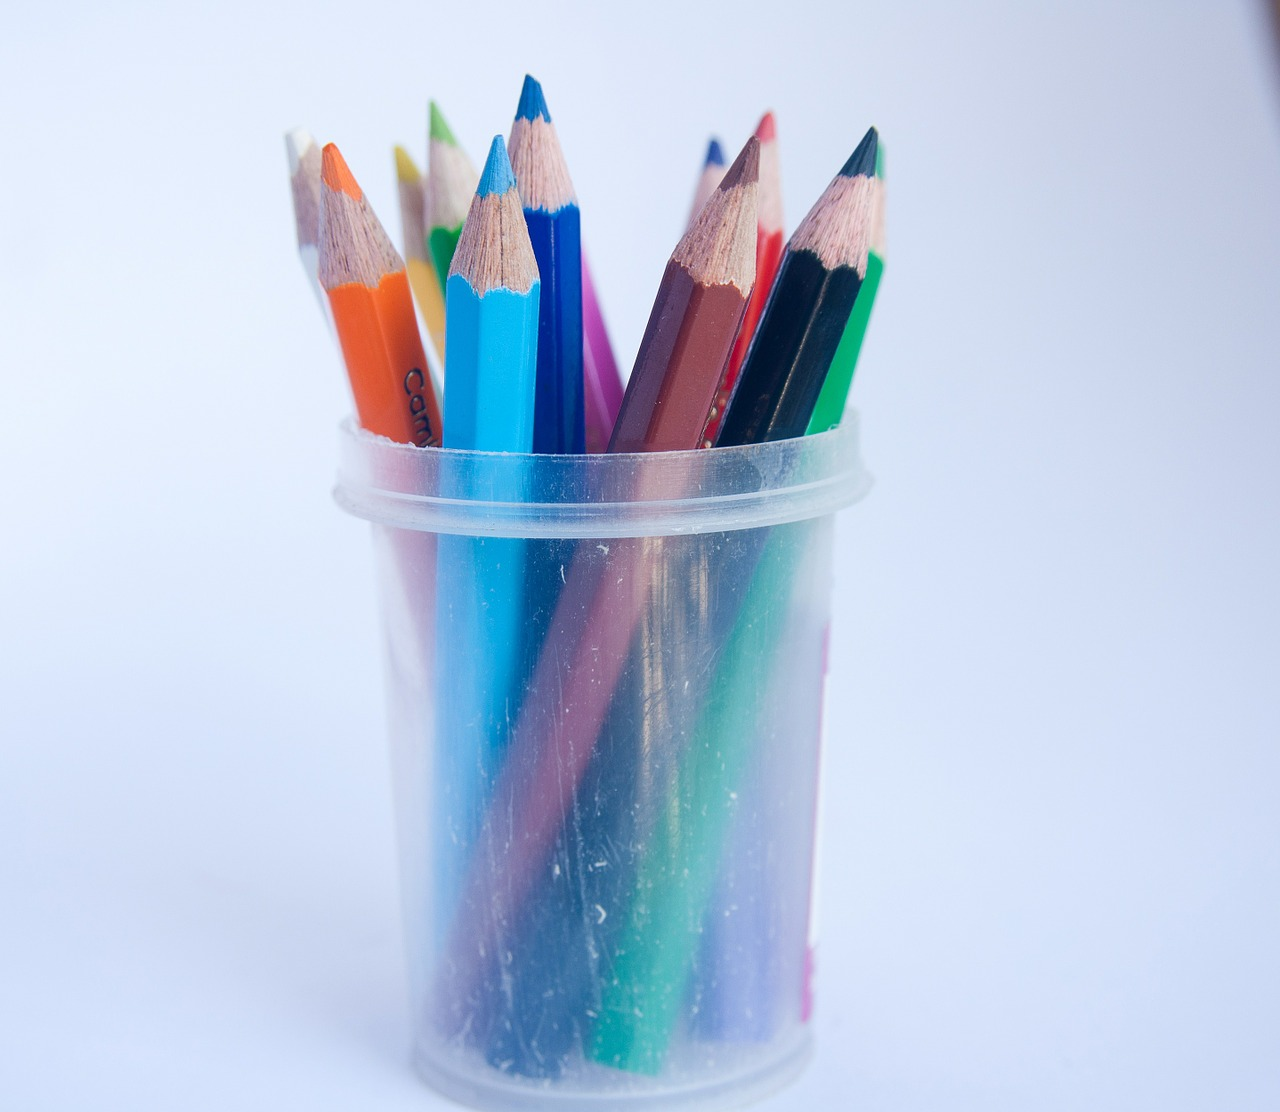 pencils spectrum colors free picture